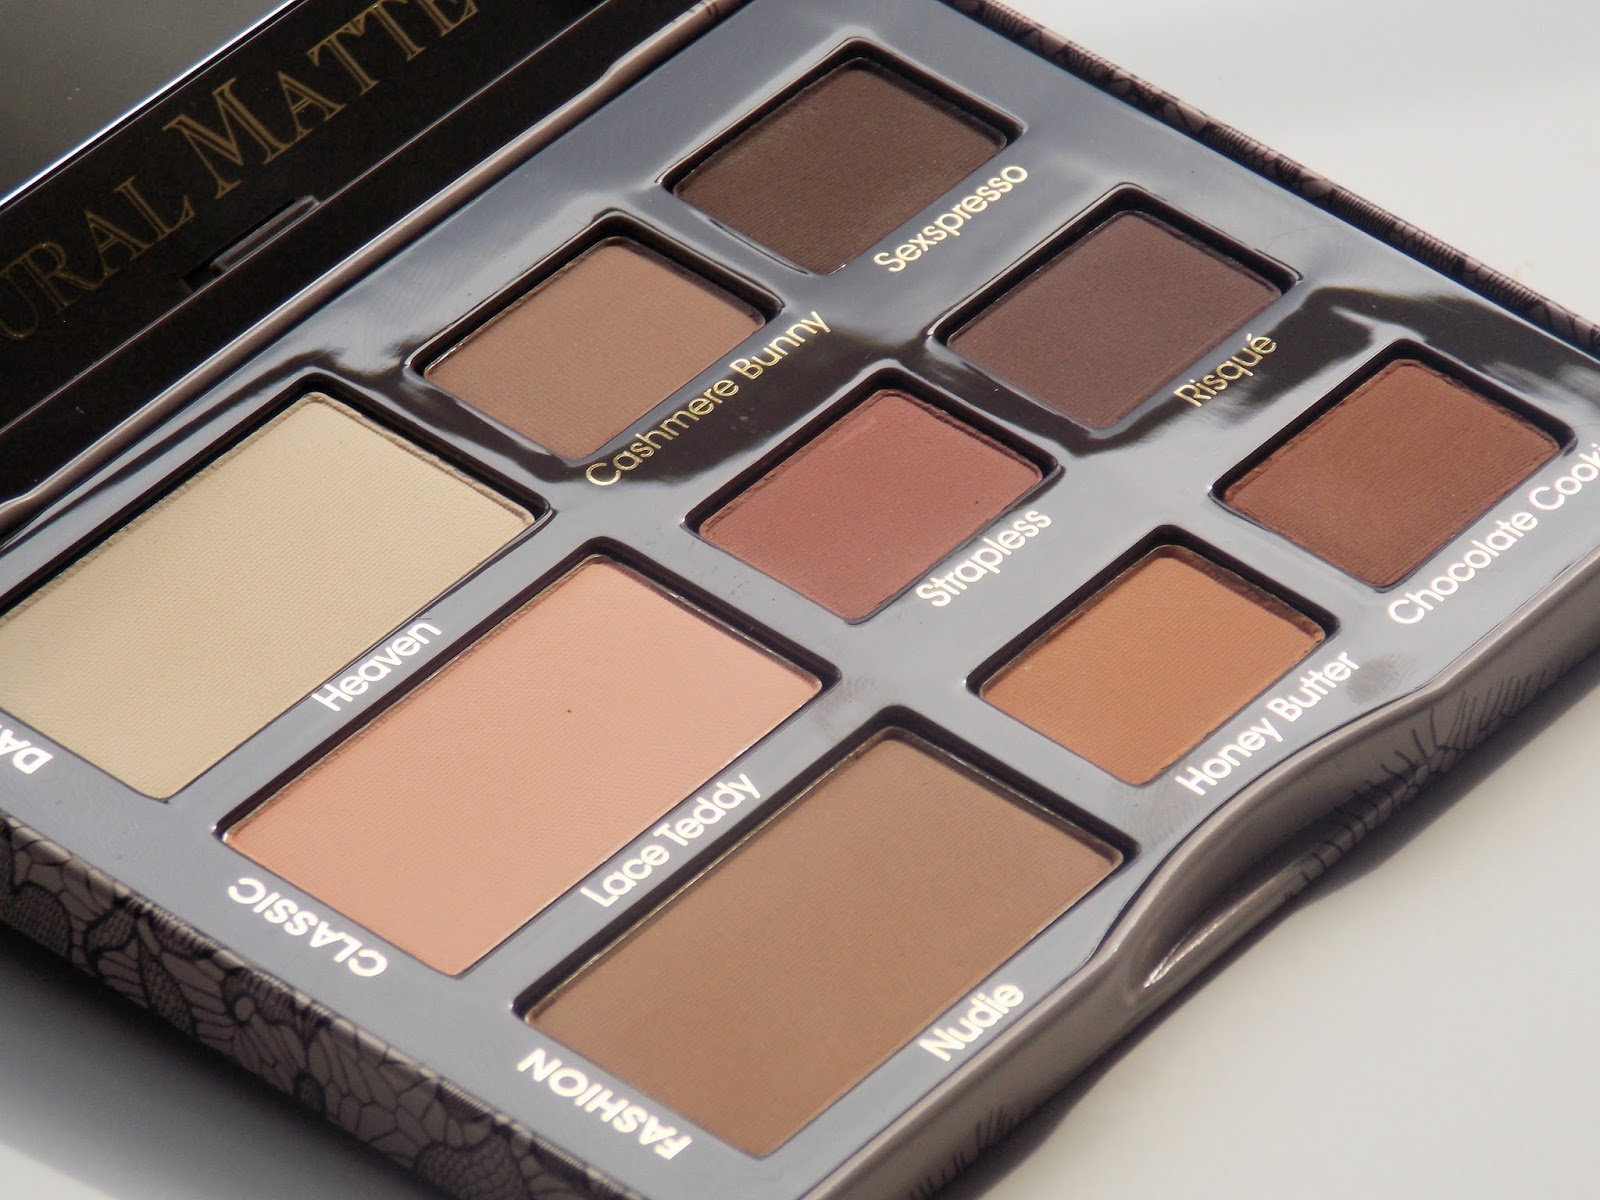 The Natural Eye: The Too Faced Natural Matte Palette